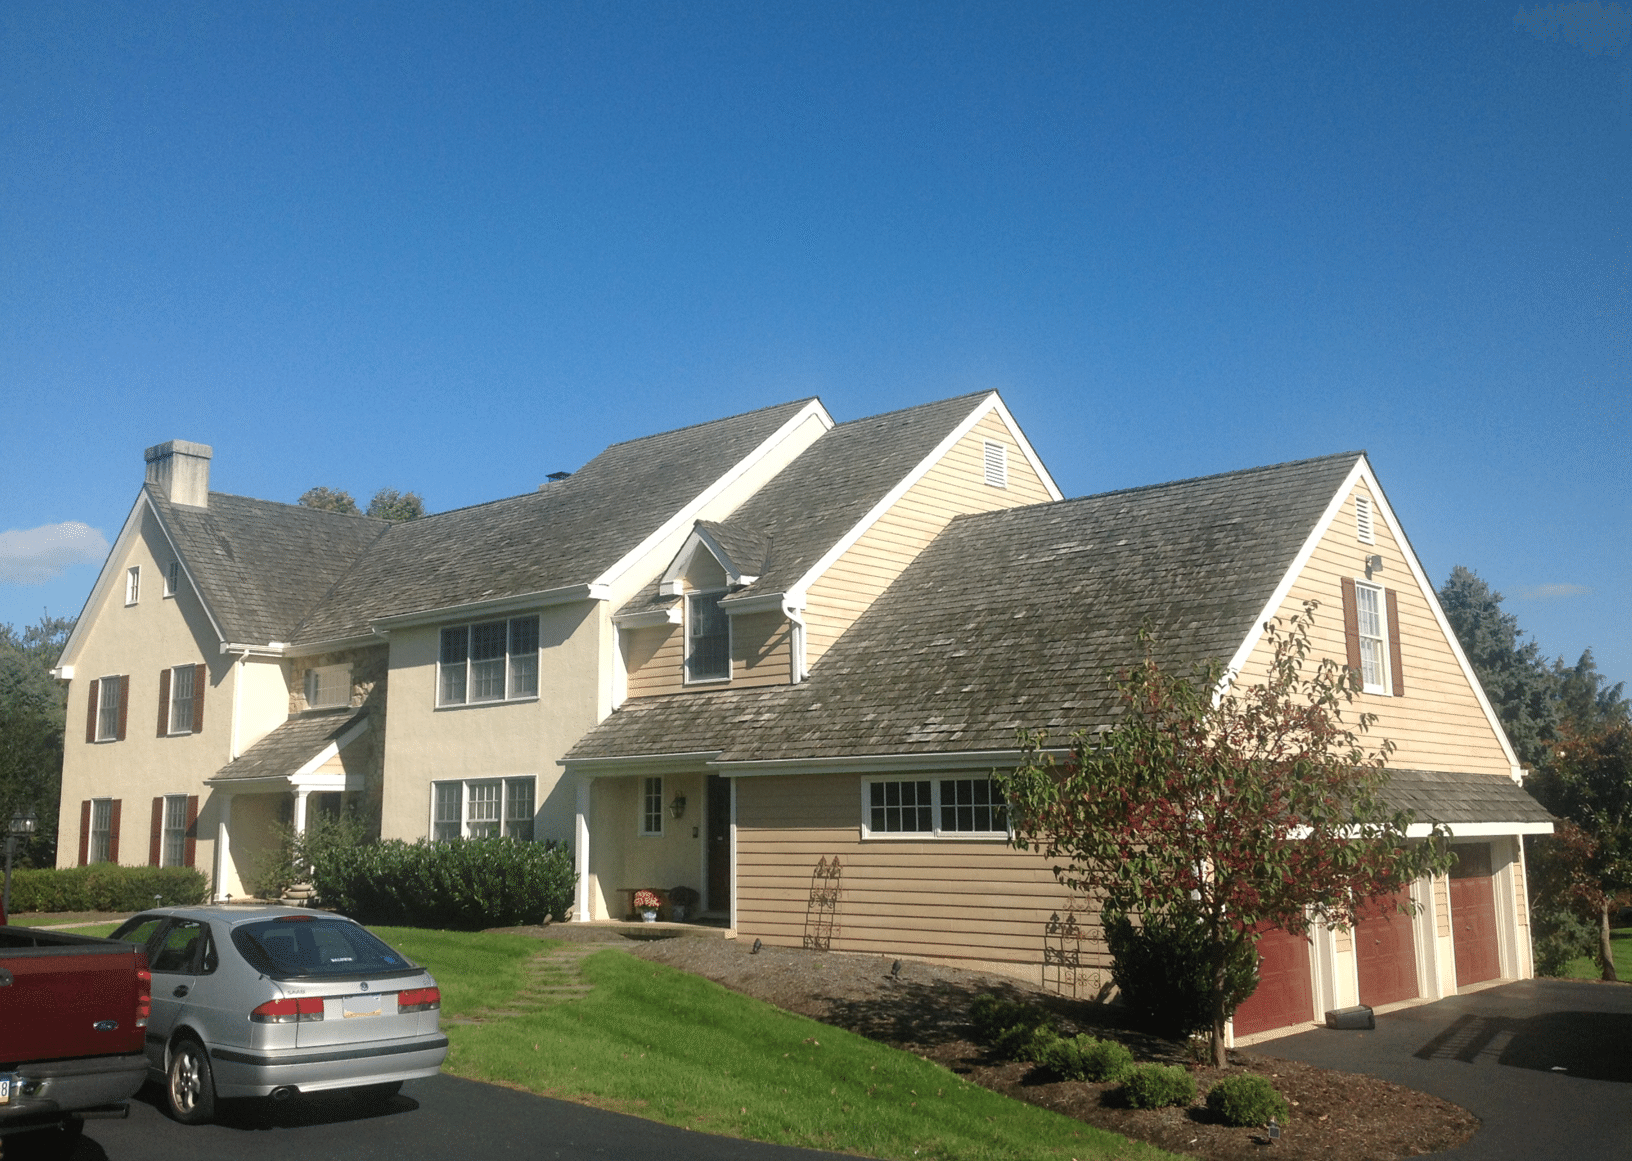 Certainteed Highland Slate Roof Replacement with Copper Accents in Malvern, PA - Before Photo